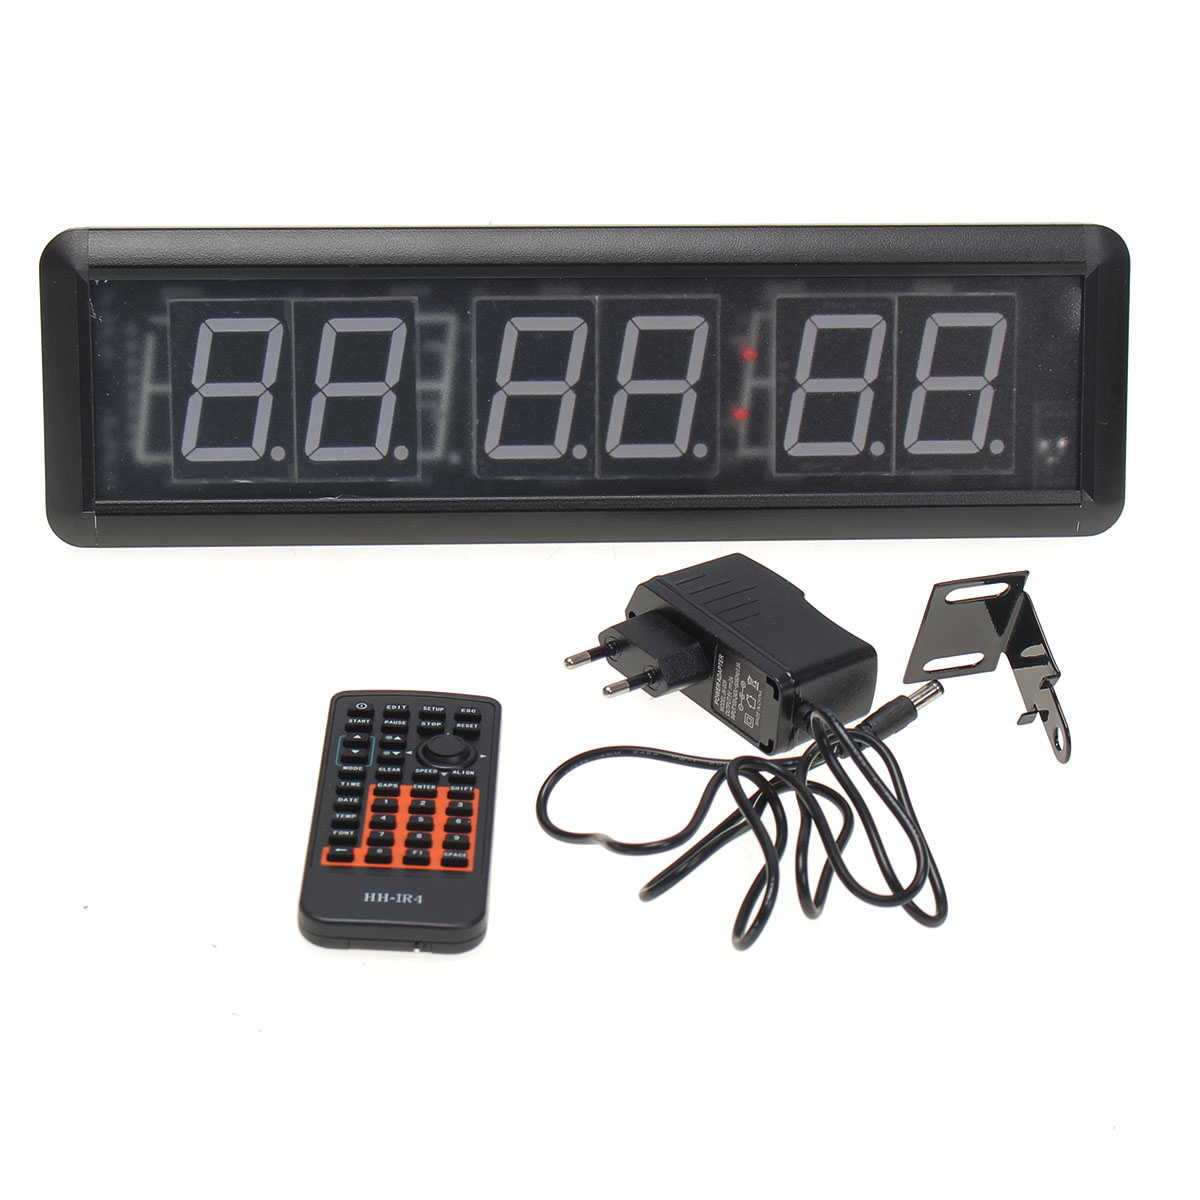 Multifunction Fitness Timer Led Wall Clock Mute Large Decorative Vintage Watch with Remote for Gym Fitness Training